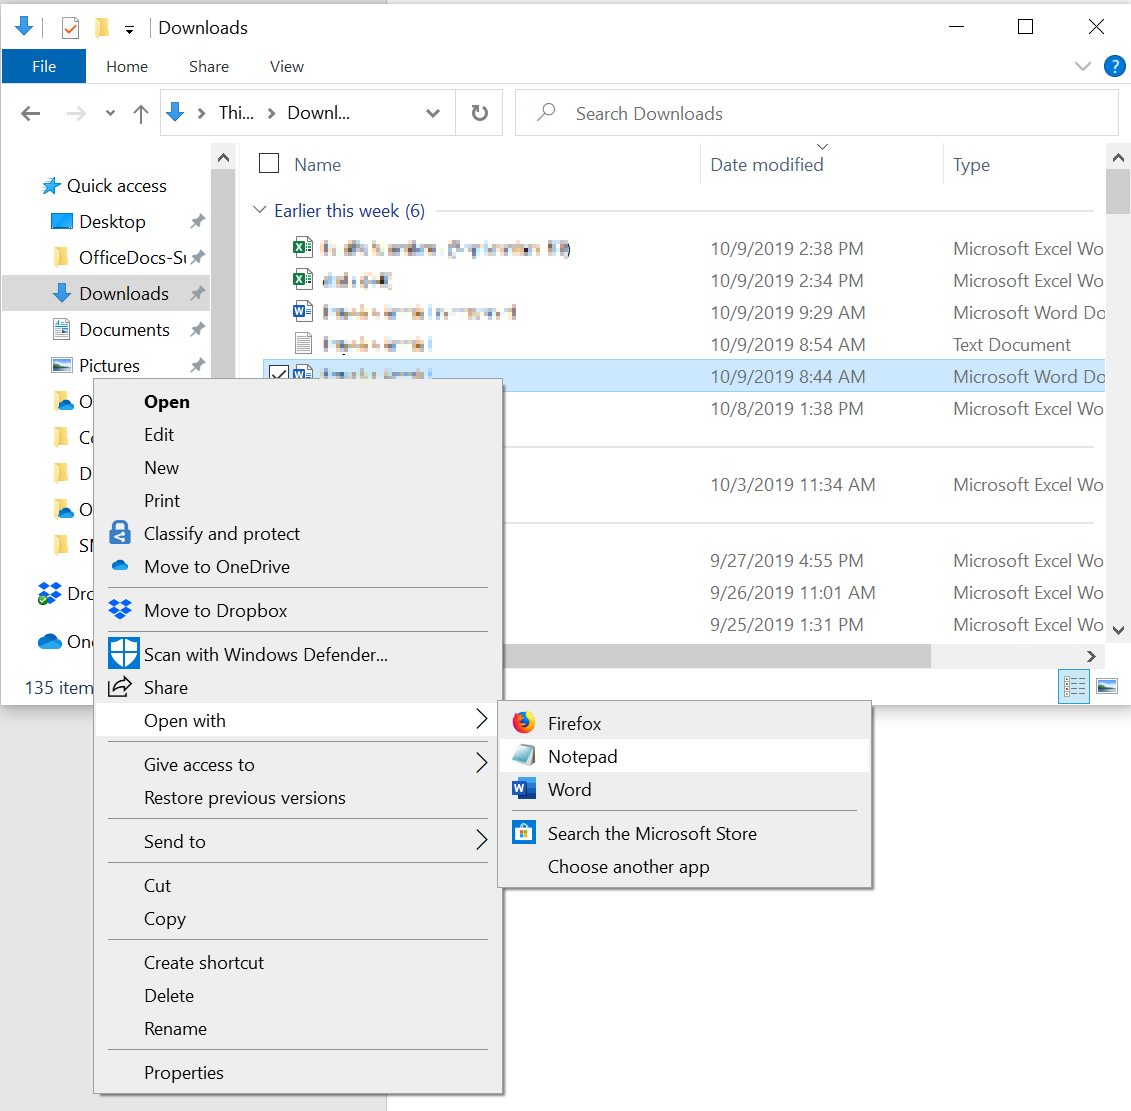 How to troubleshoot damaged documents in Word - Office | Microsoft Docs